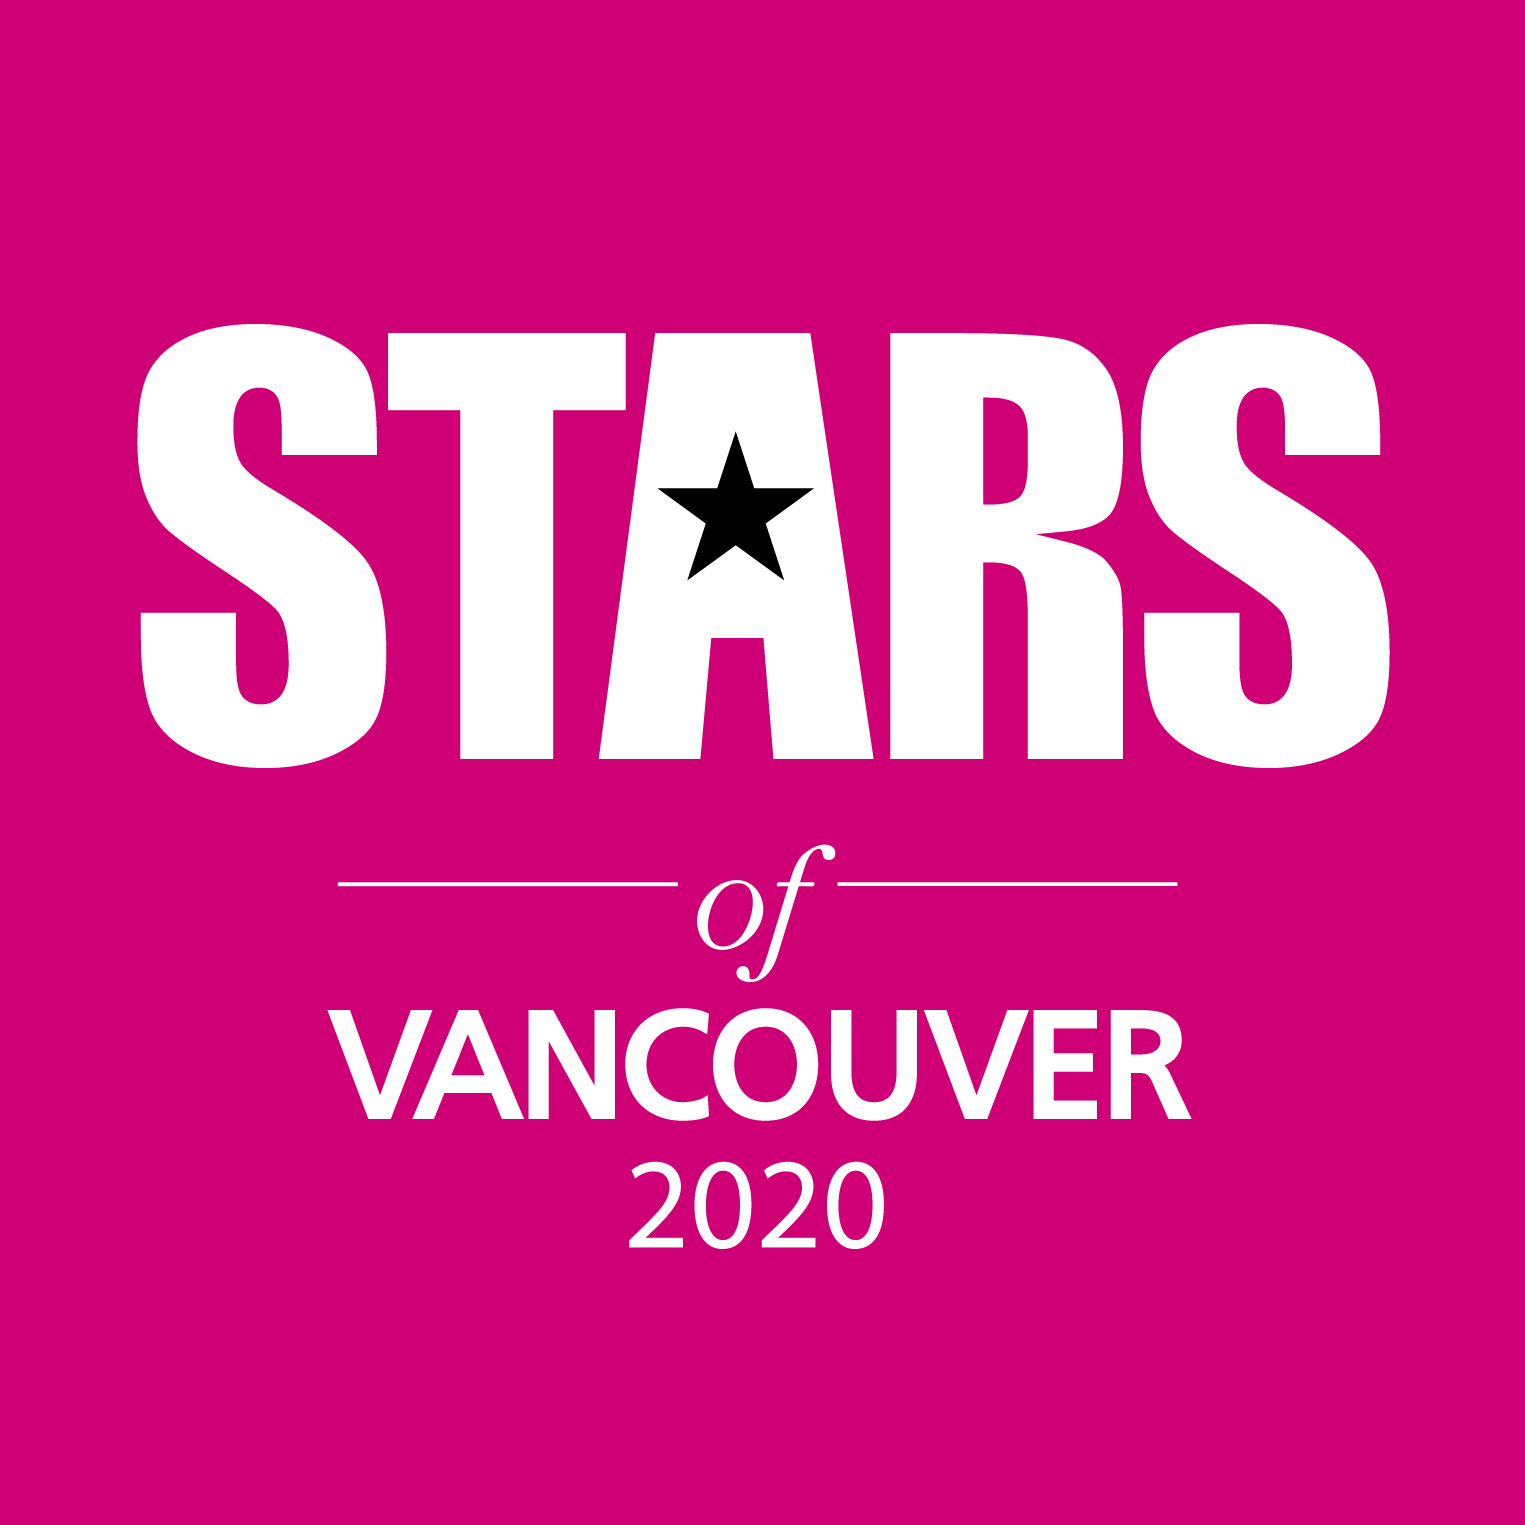 Vancouver Courier Readers' Choice Awards 2020's Award Image